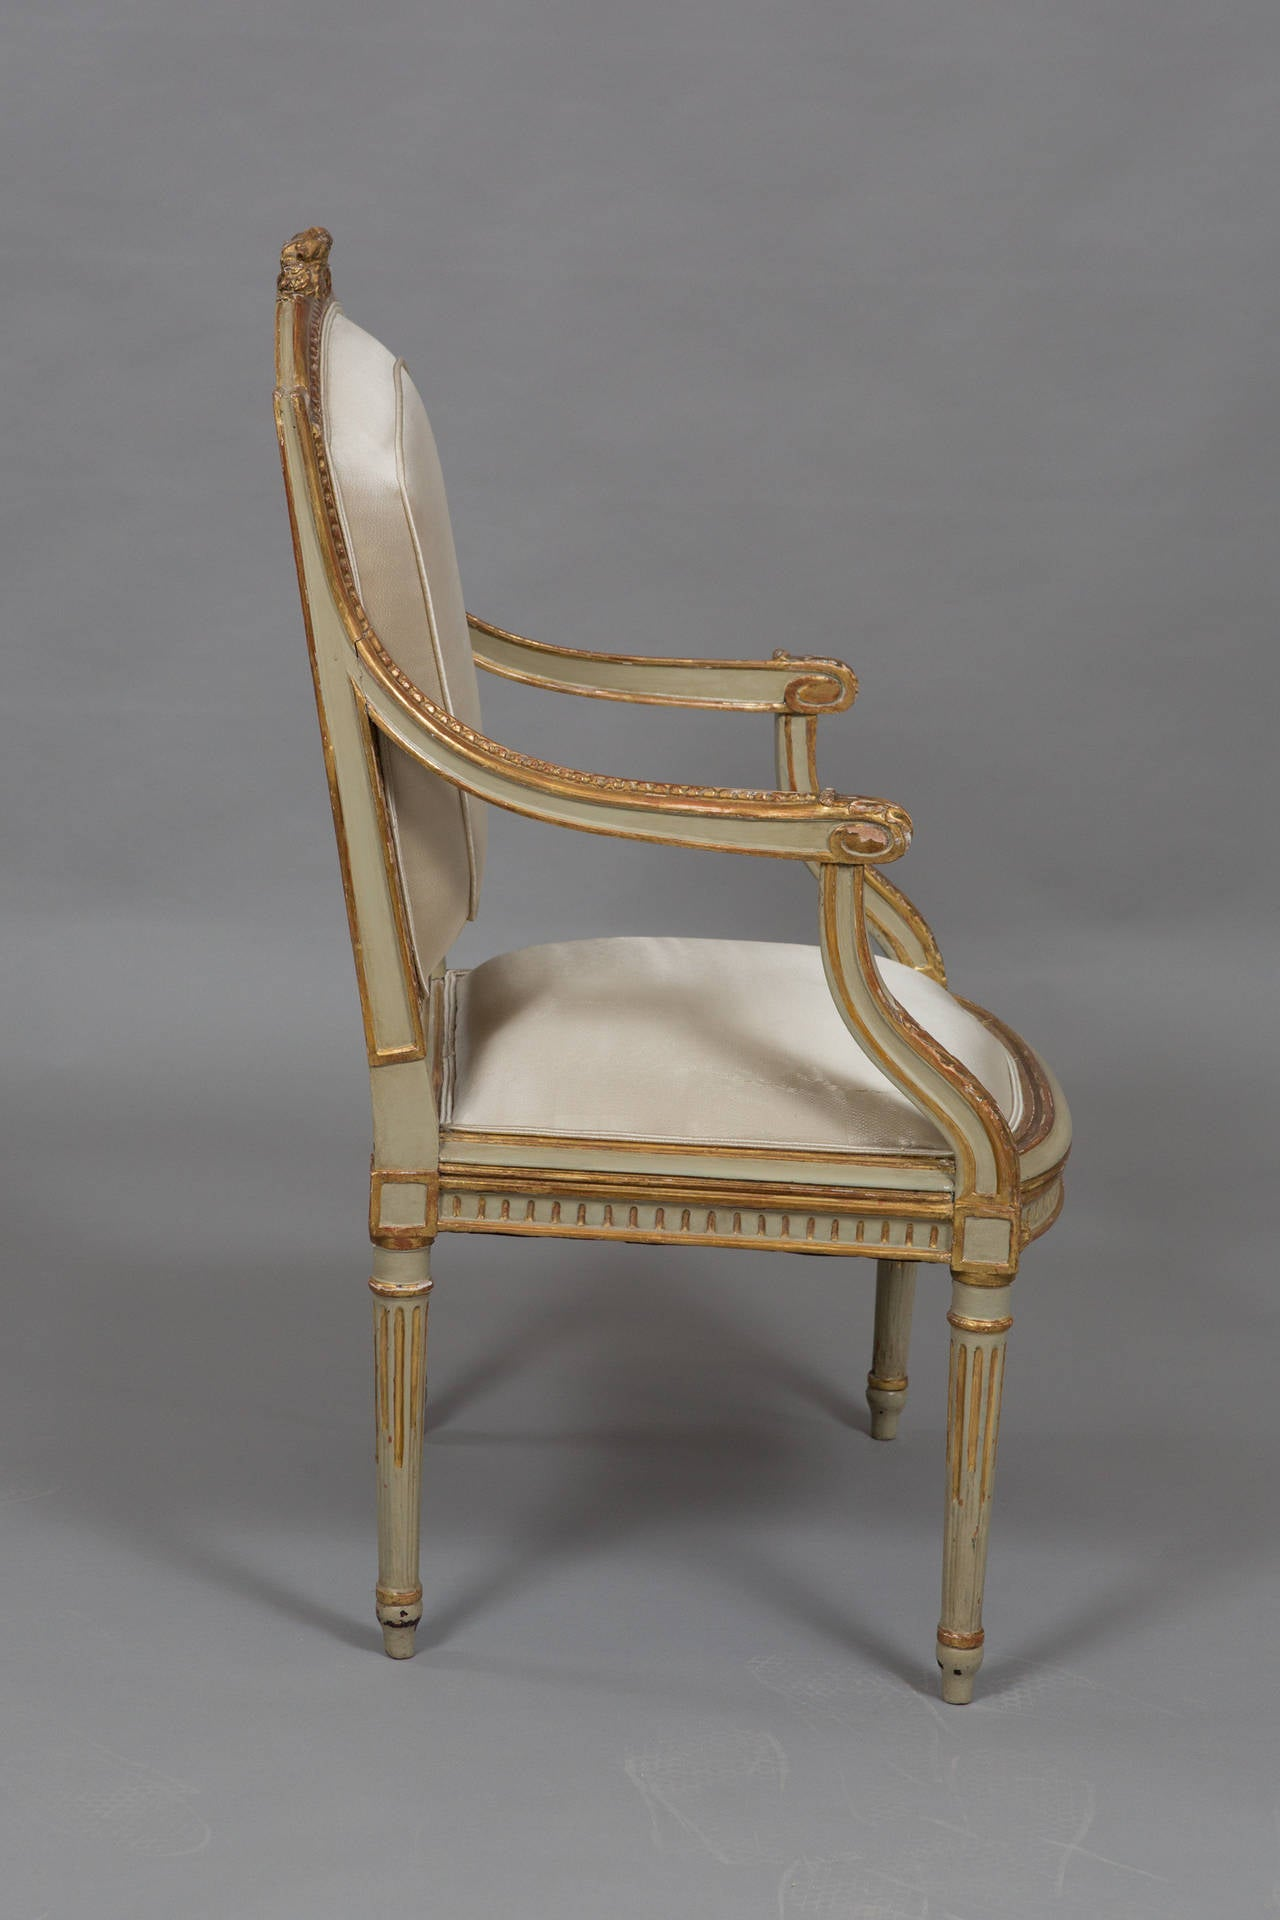 Louis XVI style parcel gilt armchair with original paint and gilt. Newly upholstered in grey silk. Acanthus detail on the supports. 